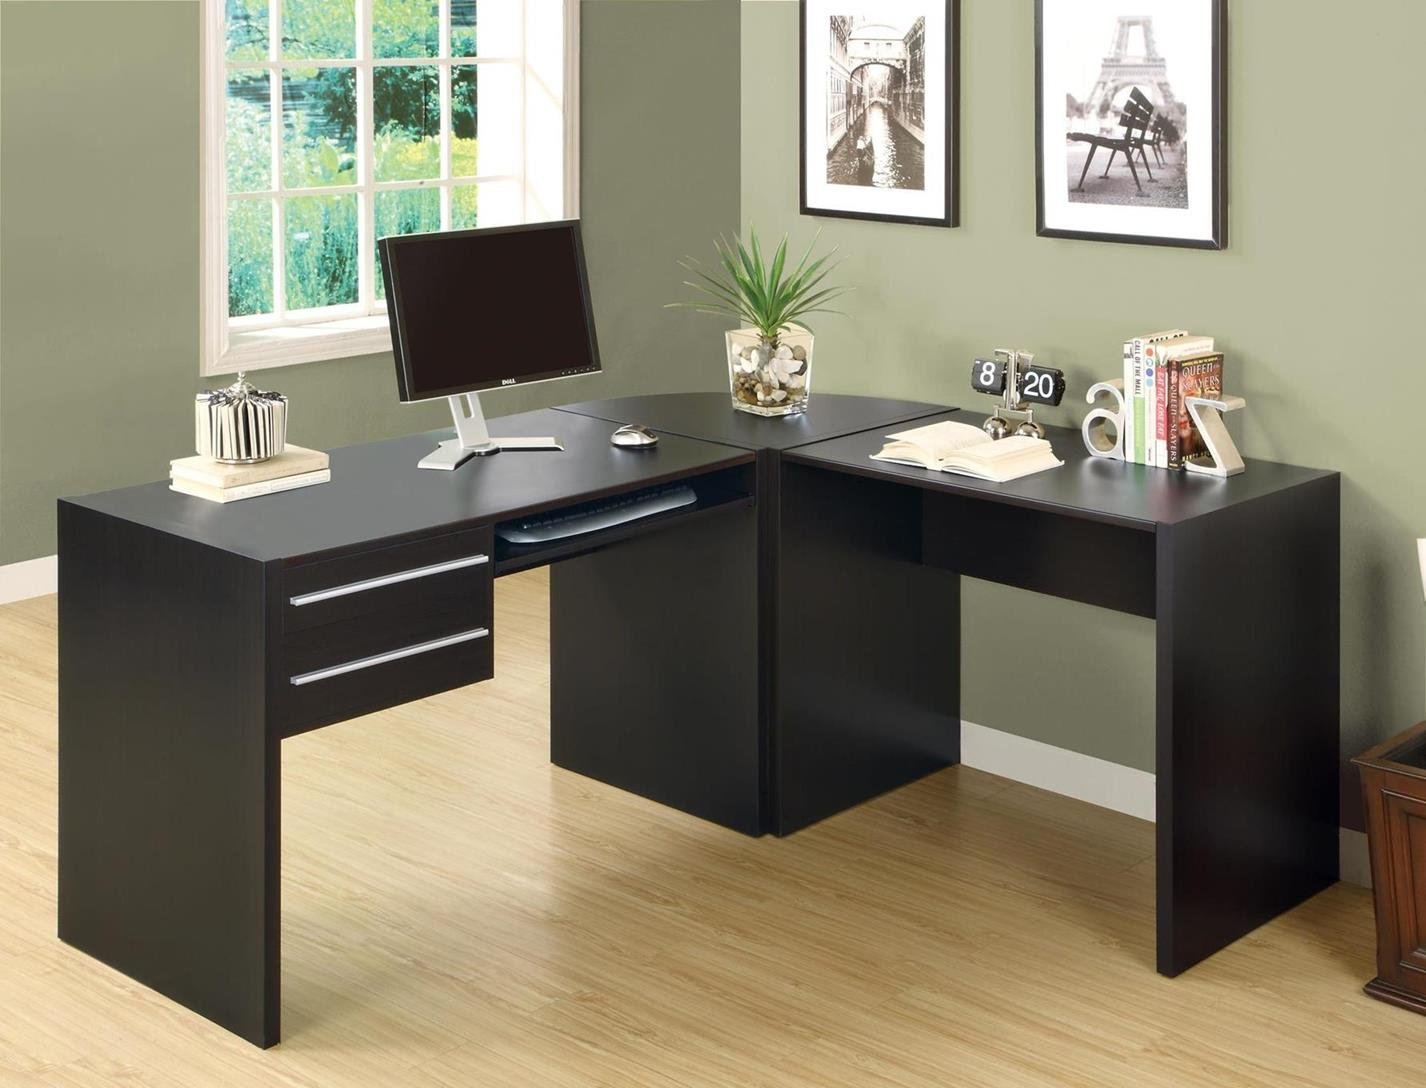 for canada corner or white throughout best desks specialties of buy hollow awesome right facing top desk monarch shelf brilliant intended left core workstations